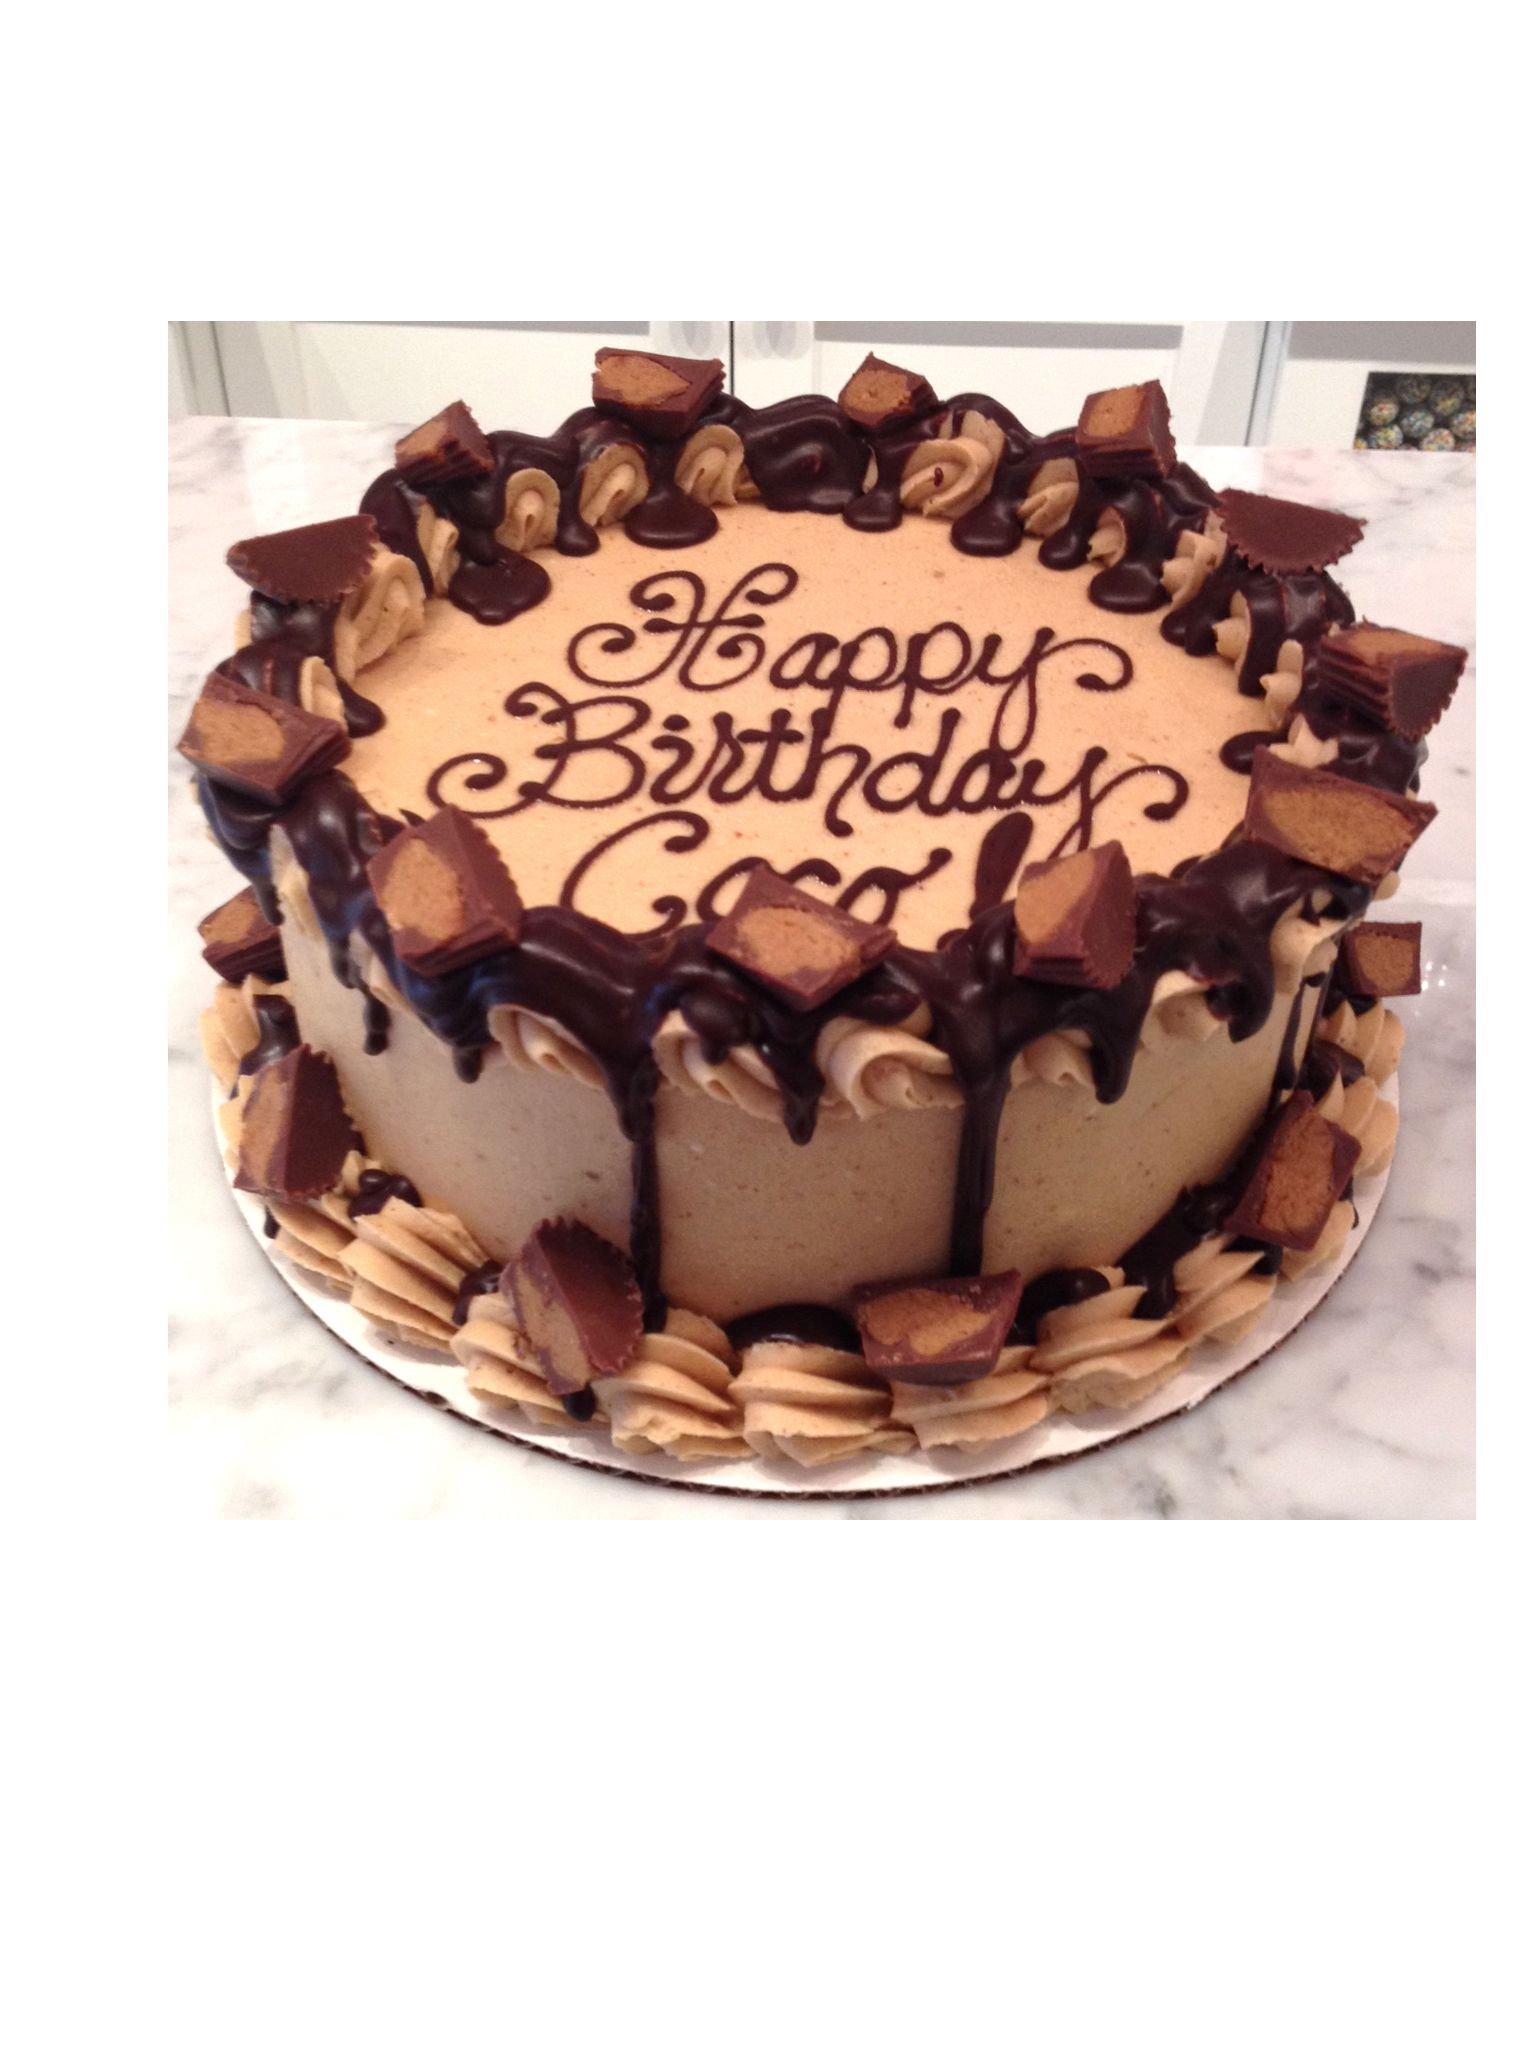 Let us create the cake of your dreams structured